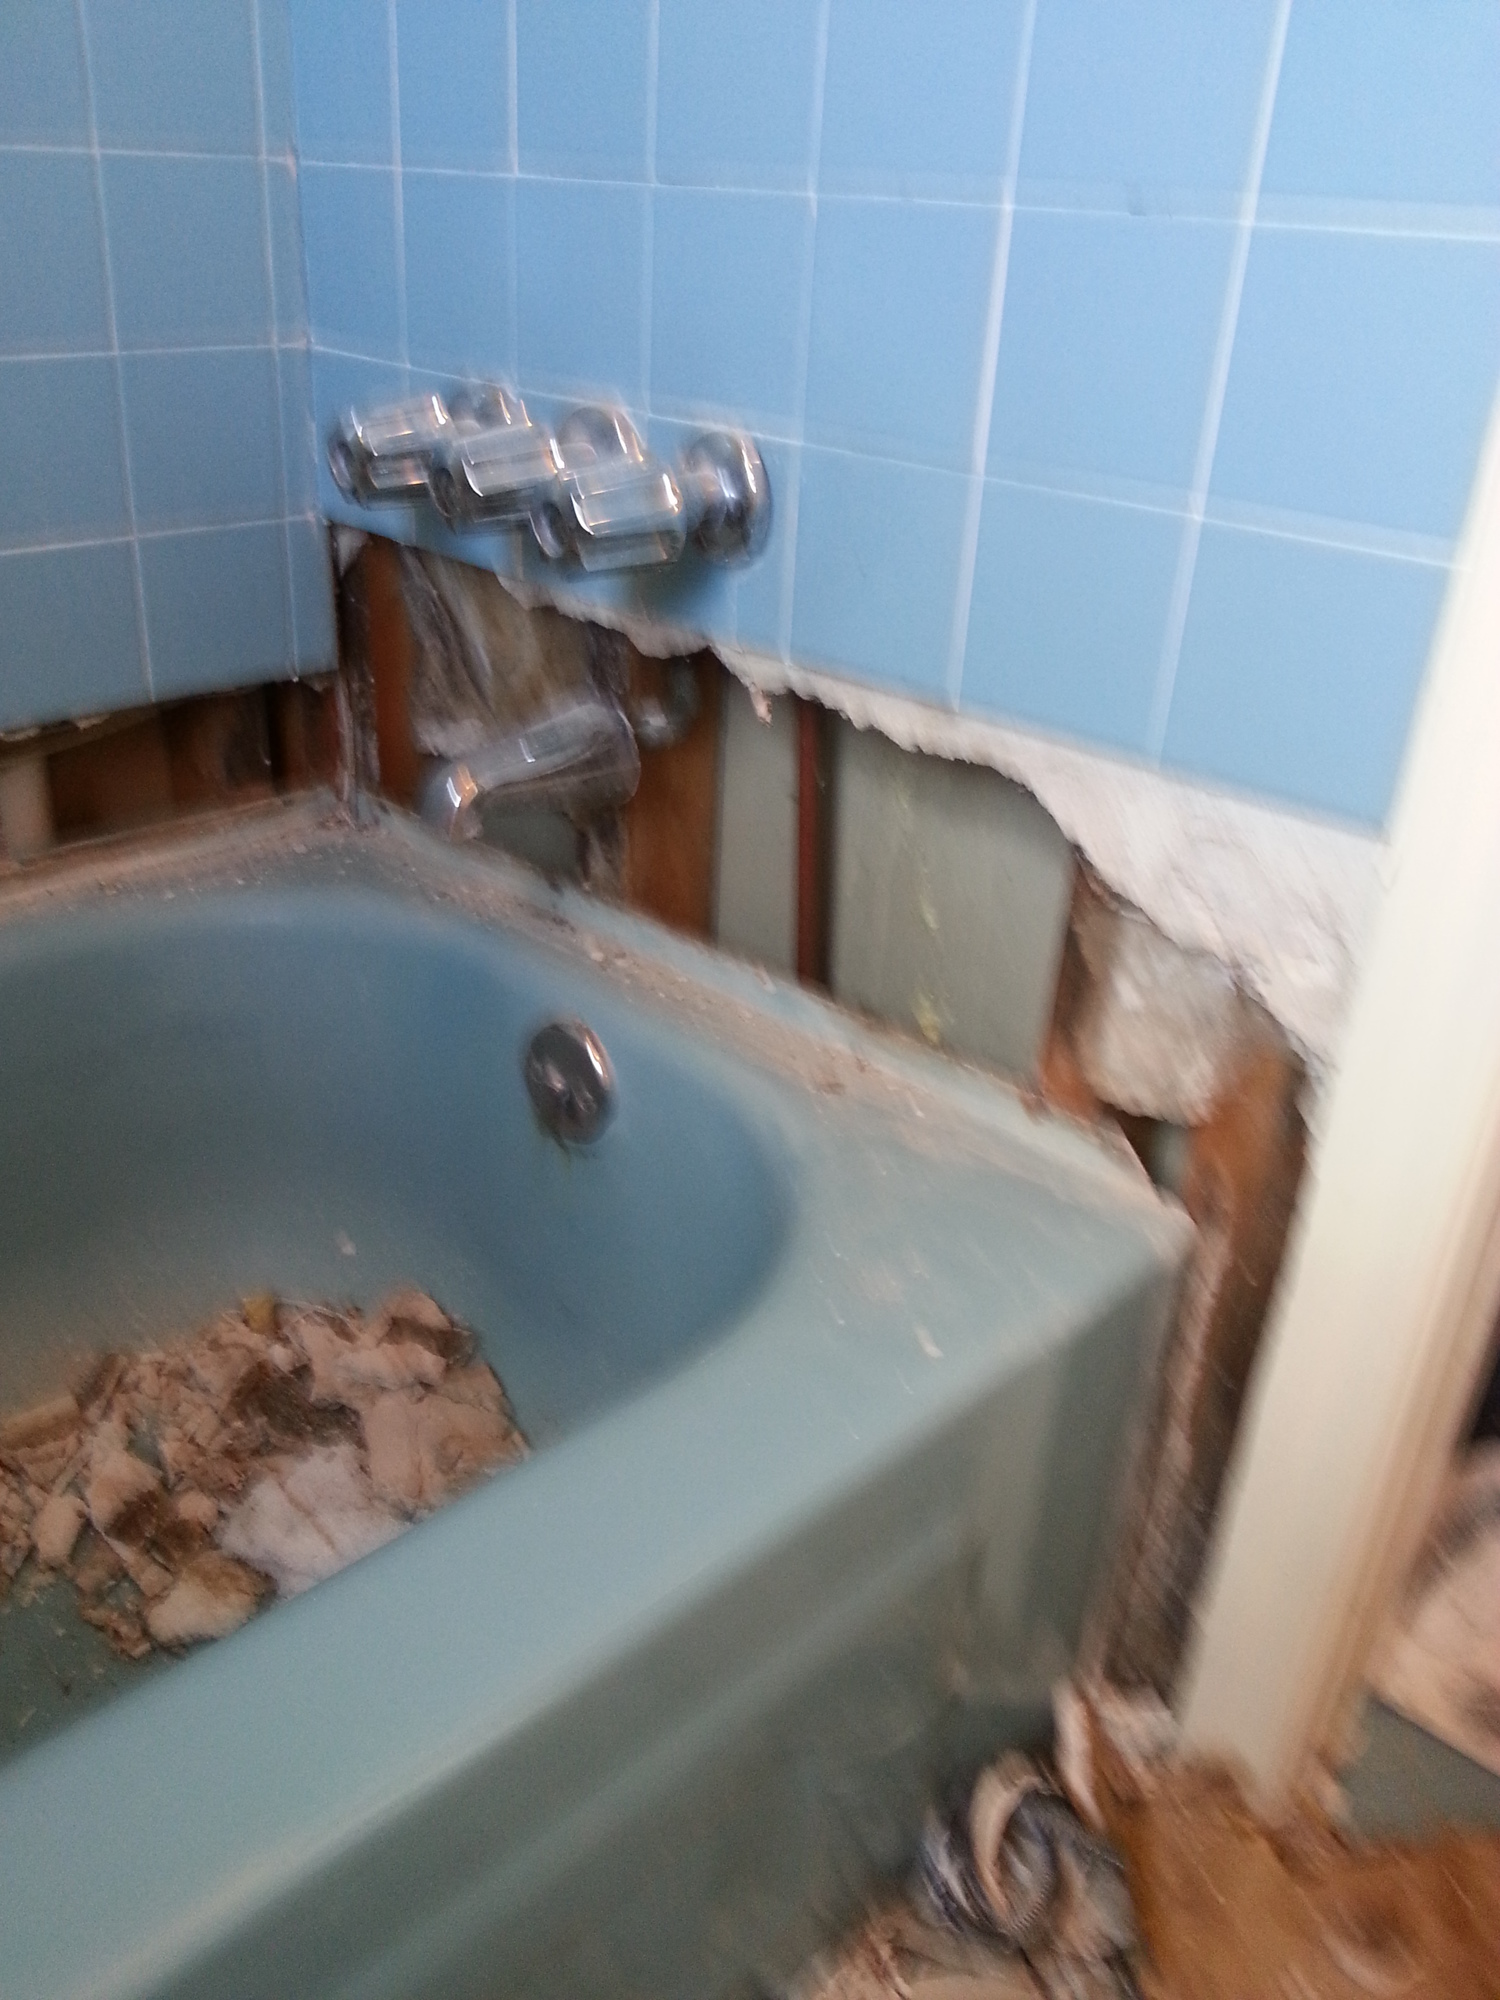 Water damage rebuild — The Grout Restoration Company 502-561-0911 ...